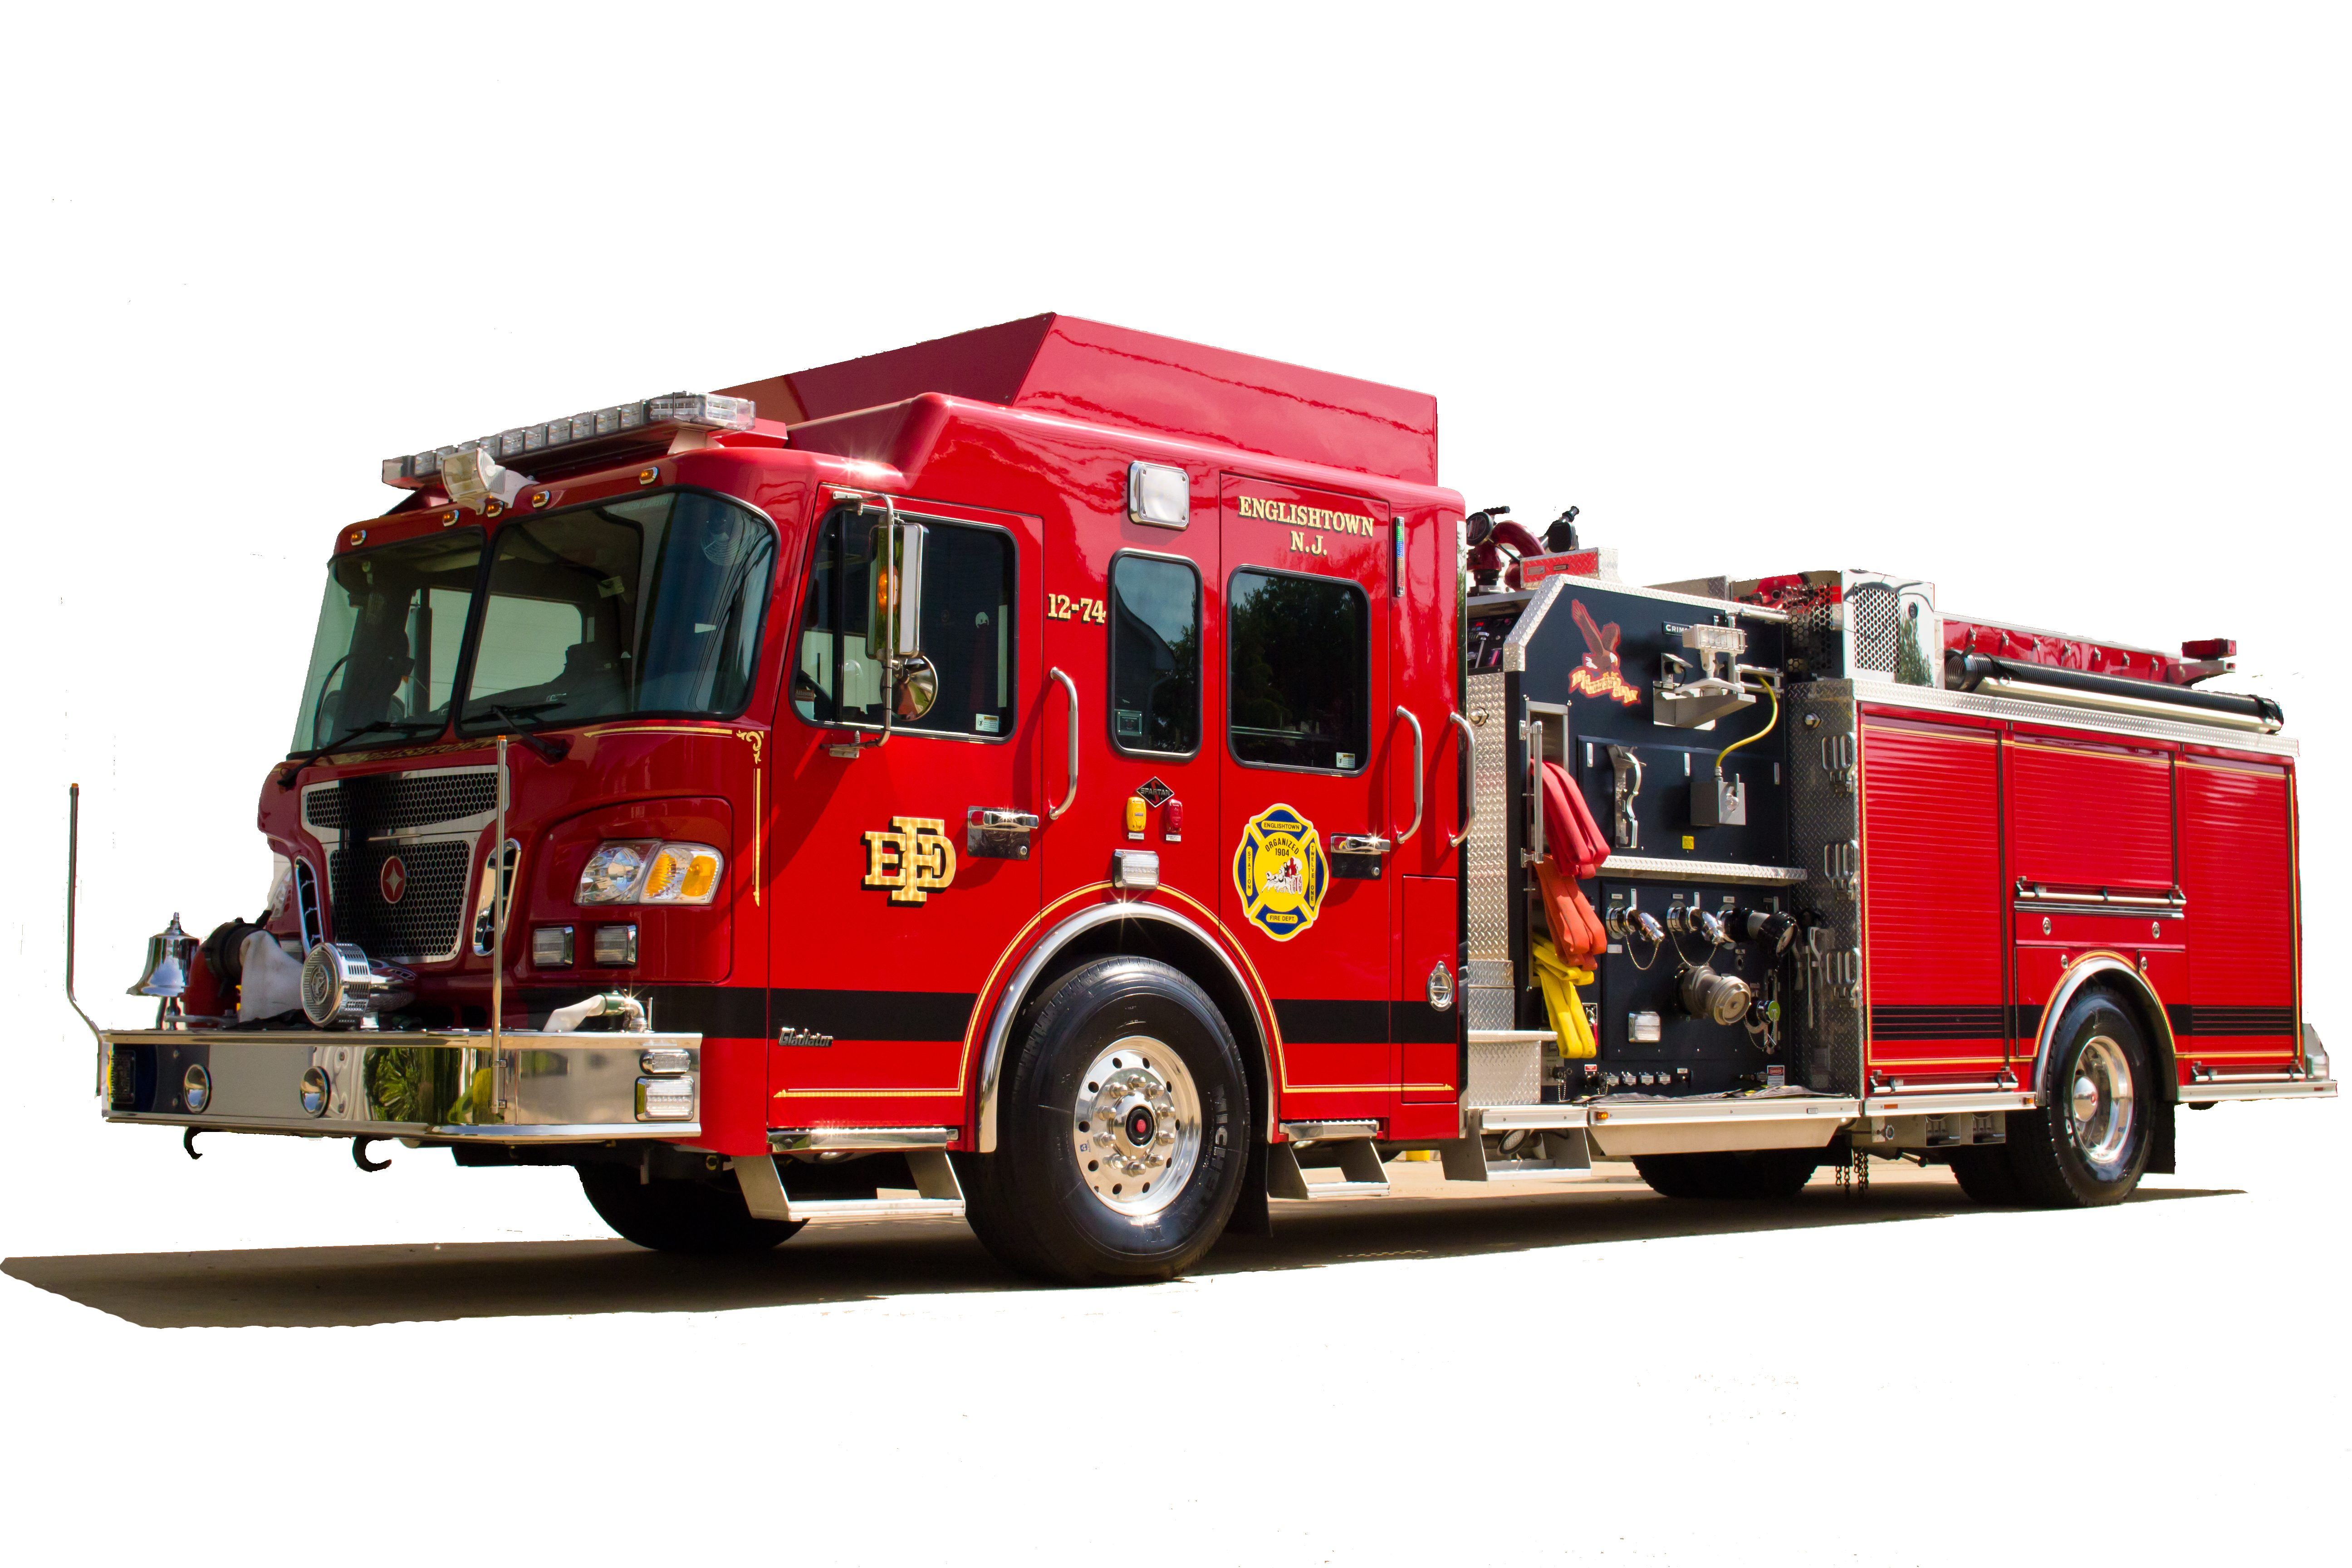 Transparent engine truck. Fire png images free